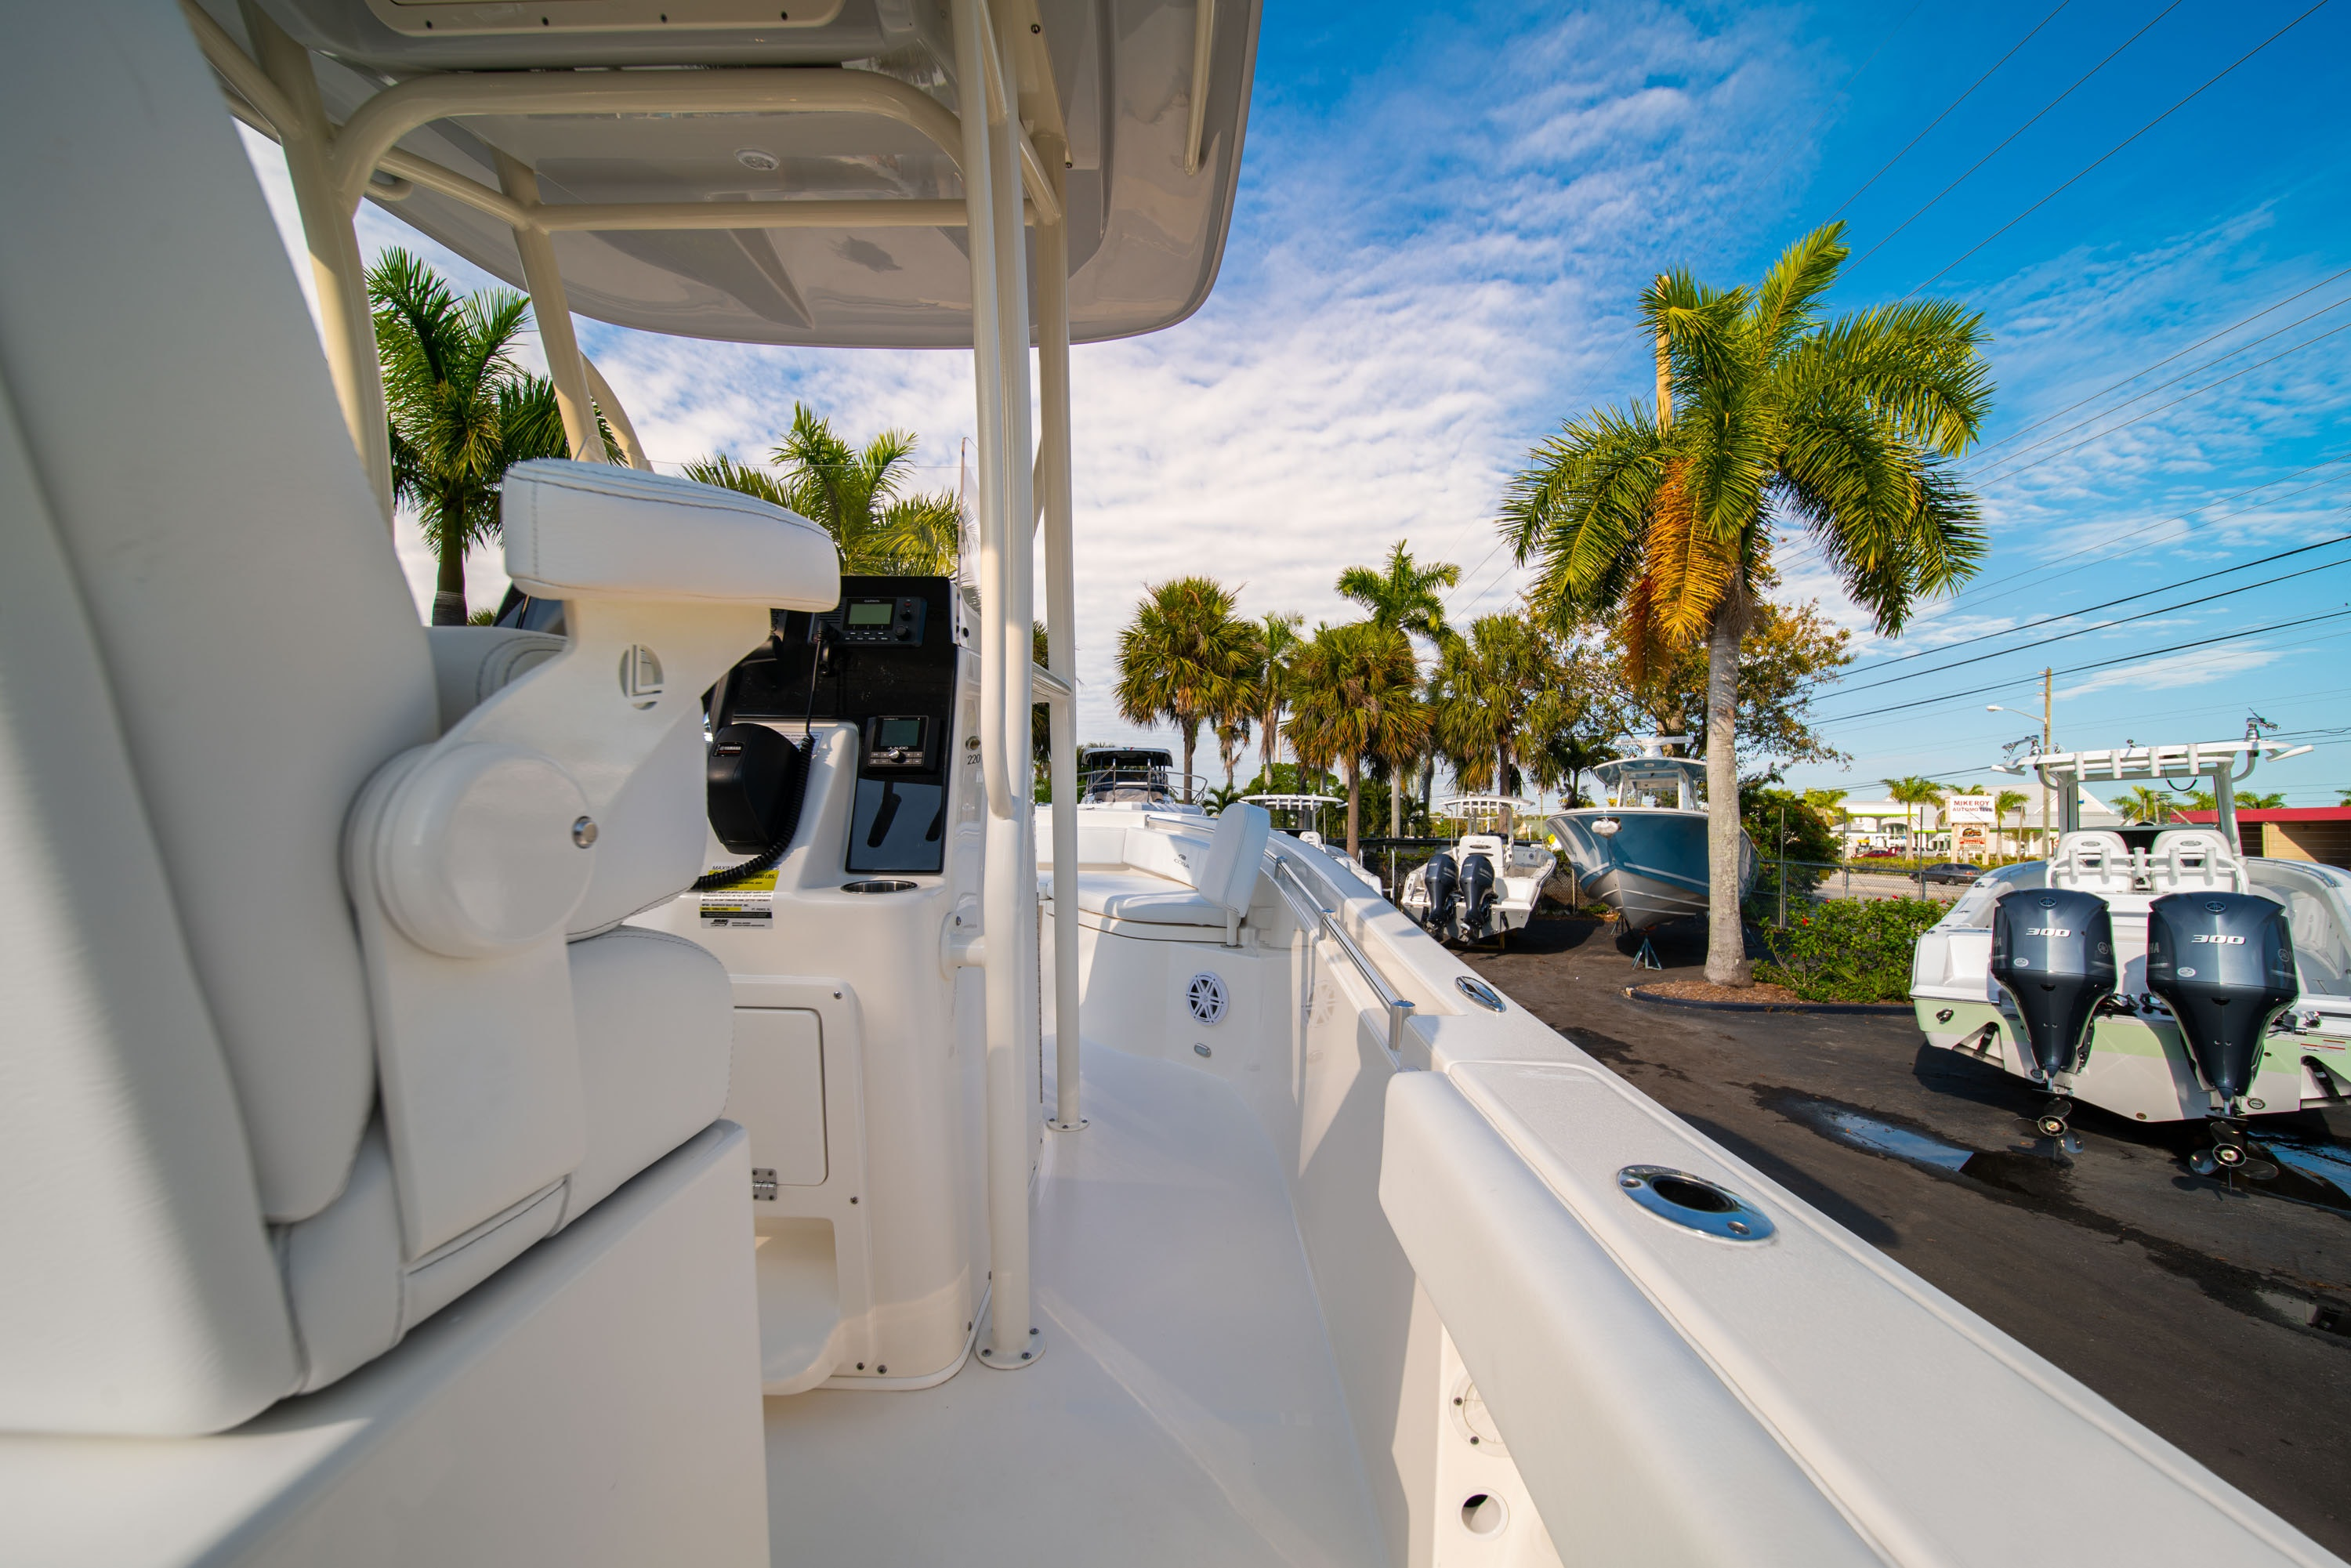 Thumbnail 15 for New 2020 Cobia 220 CC boat for sale in West Palm Beach, FL